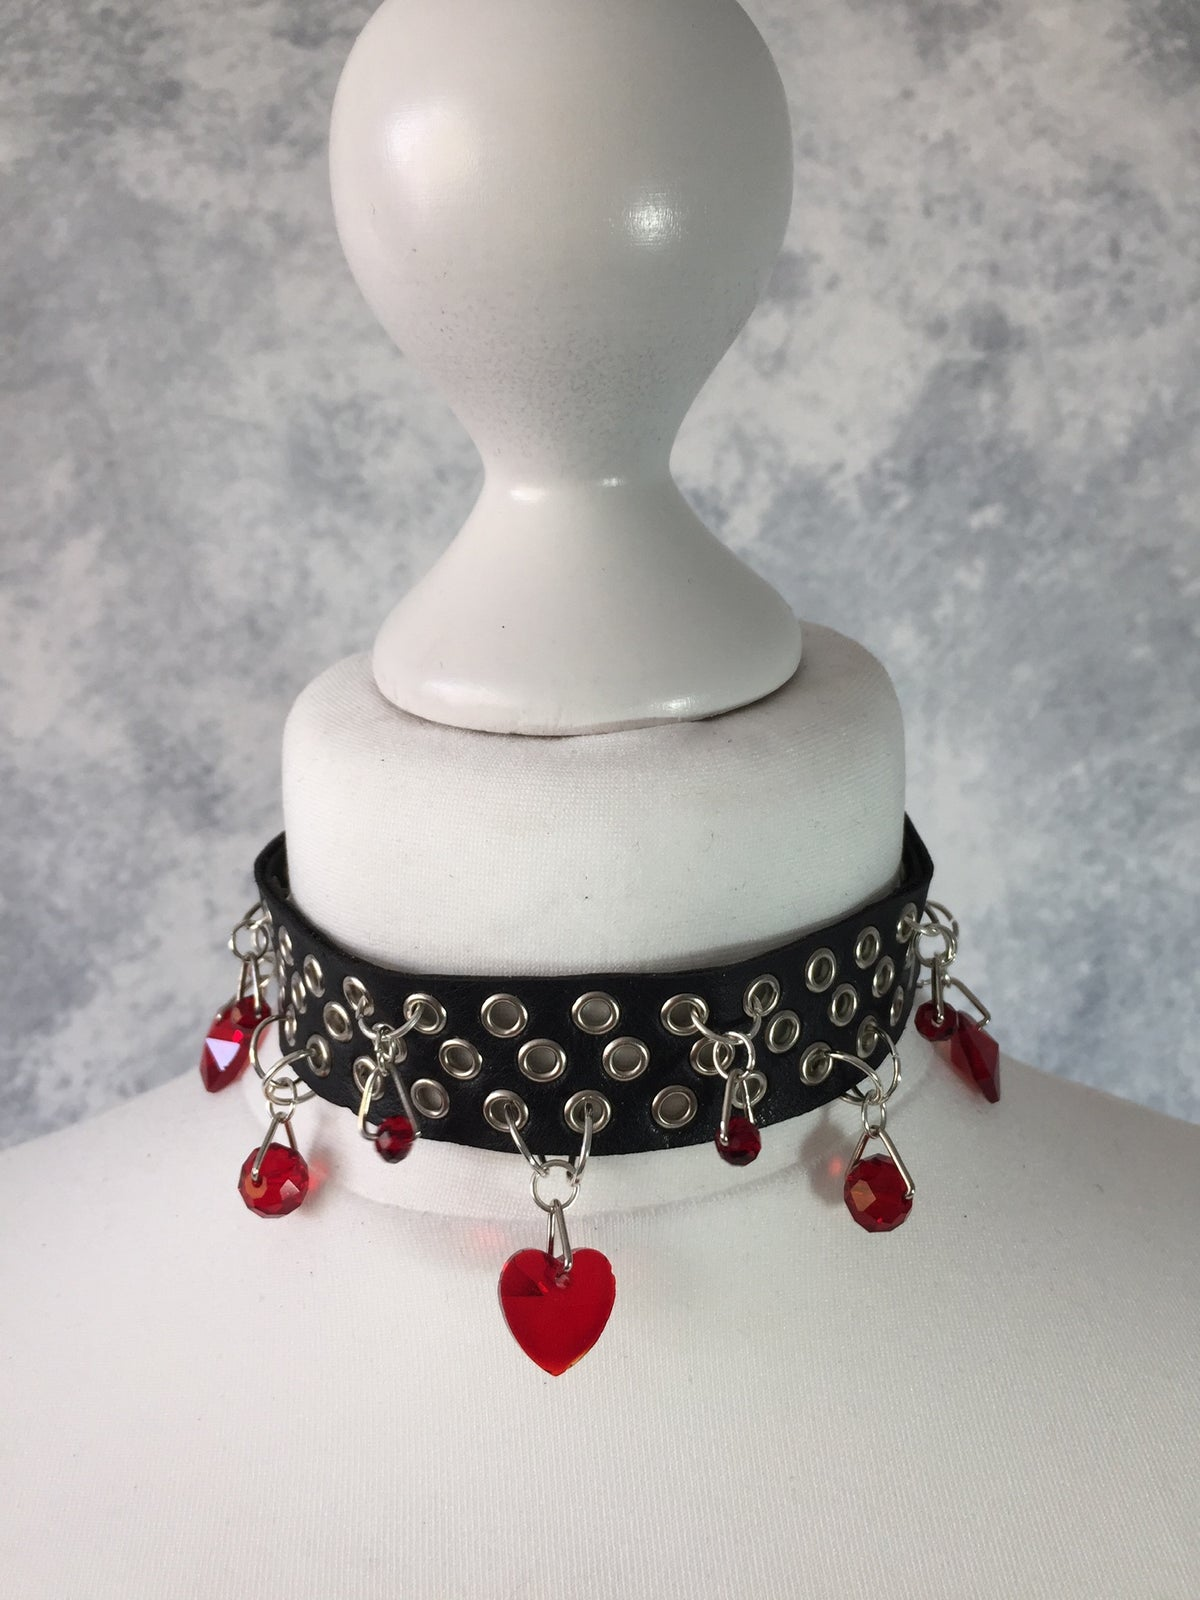 Image of Black collar with red heart beads